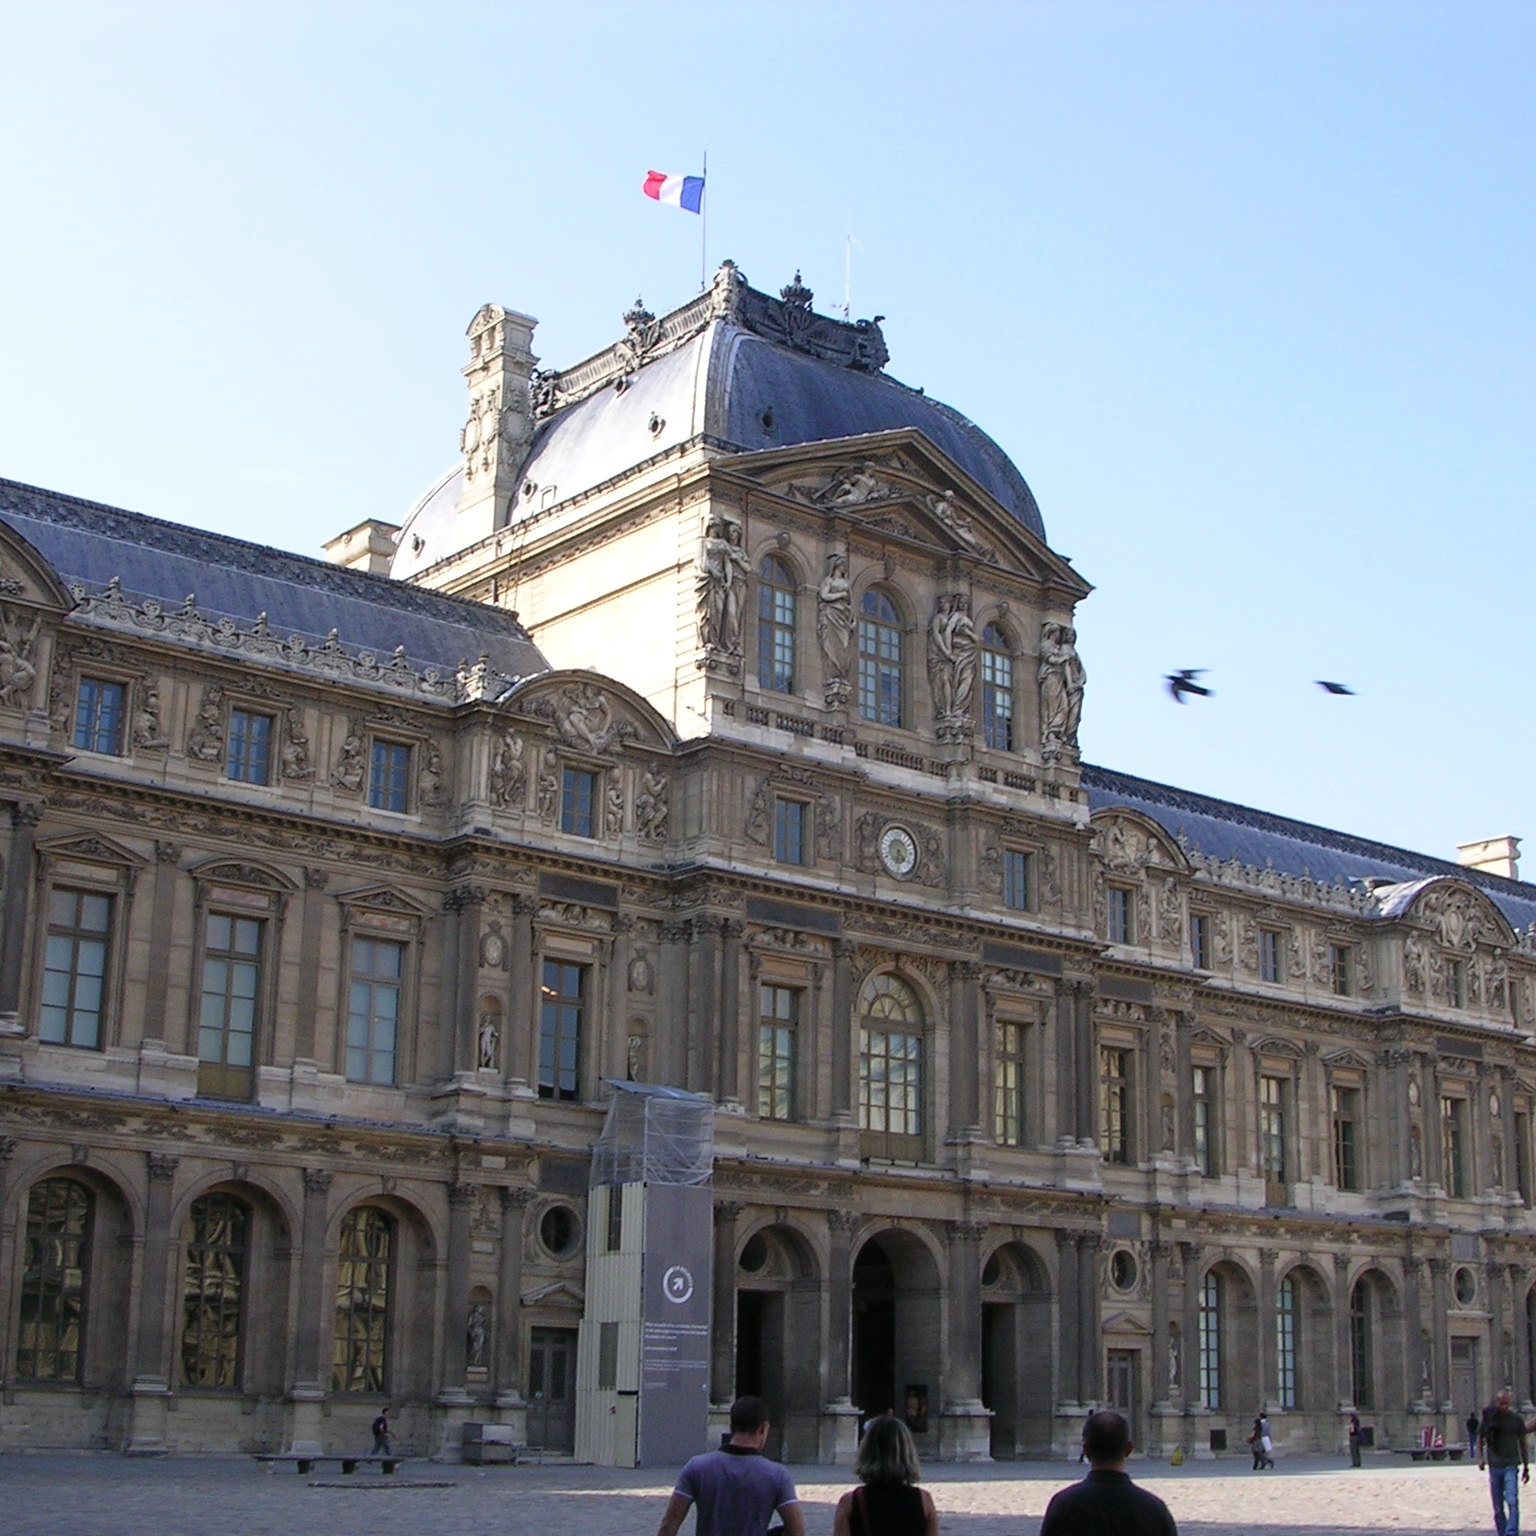 Alternative entrance to the Louvre, Paris by The Doubtful Traveller